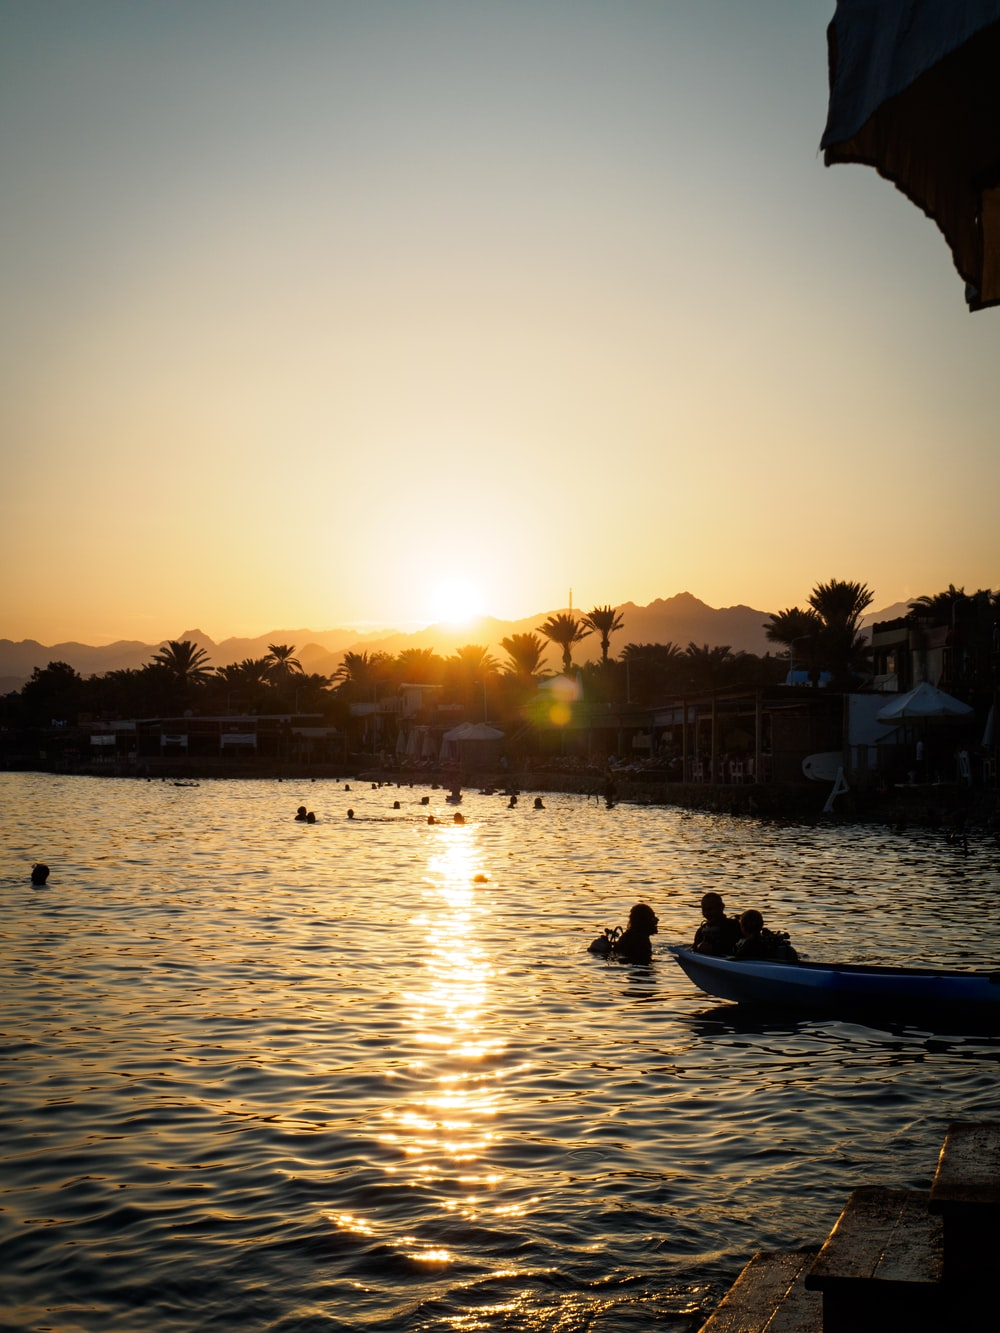 silhouette of people riding boat on body of water during sunset